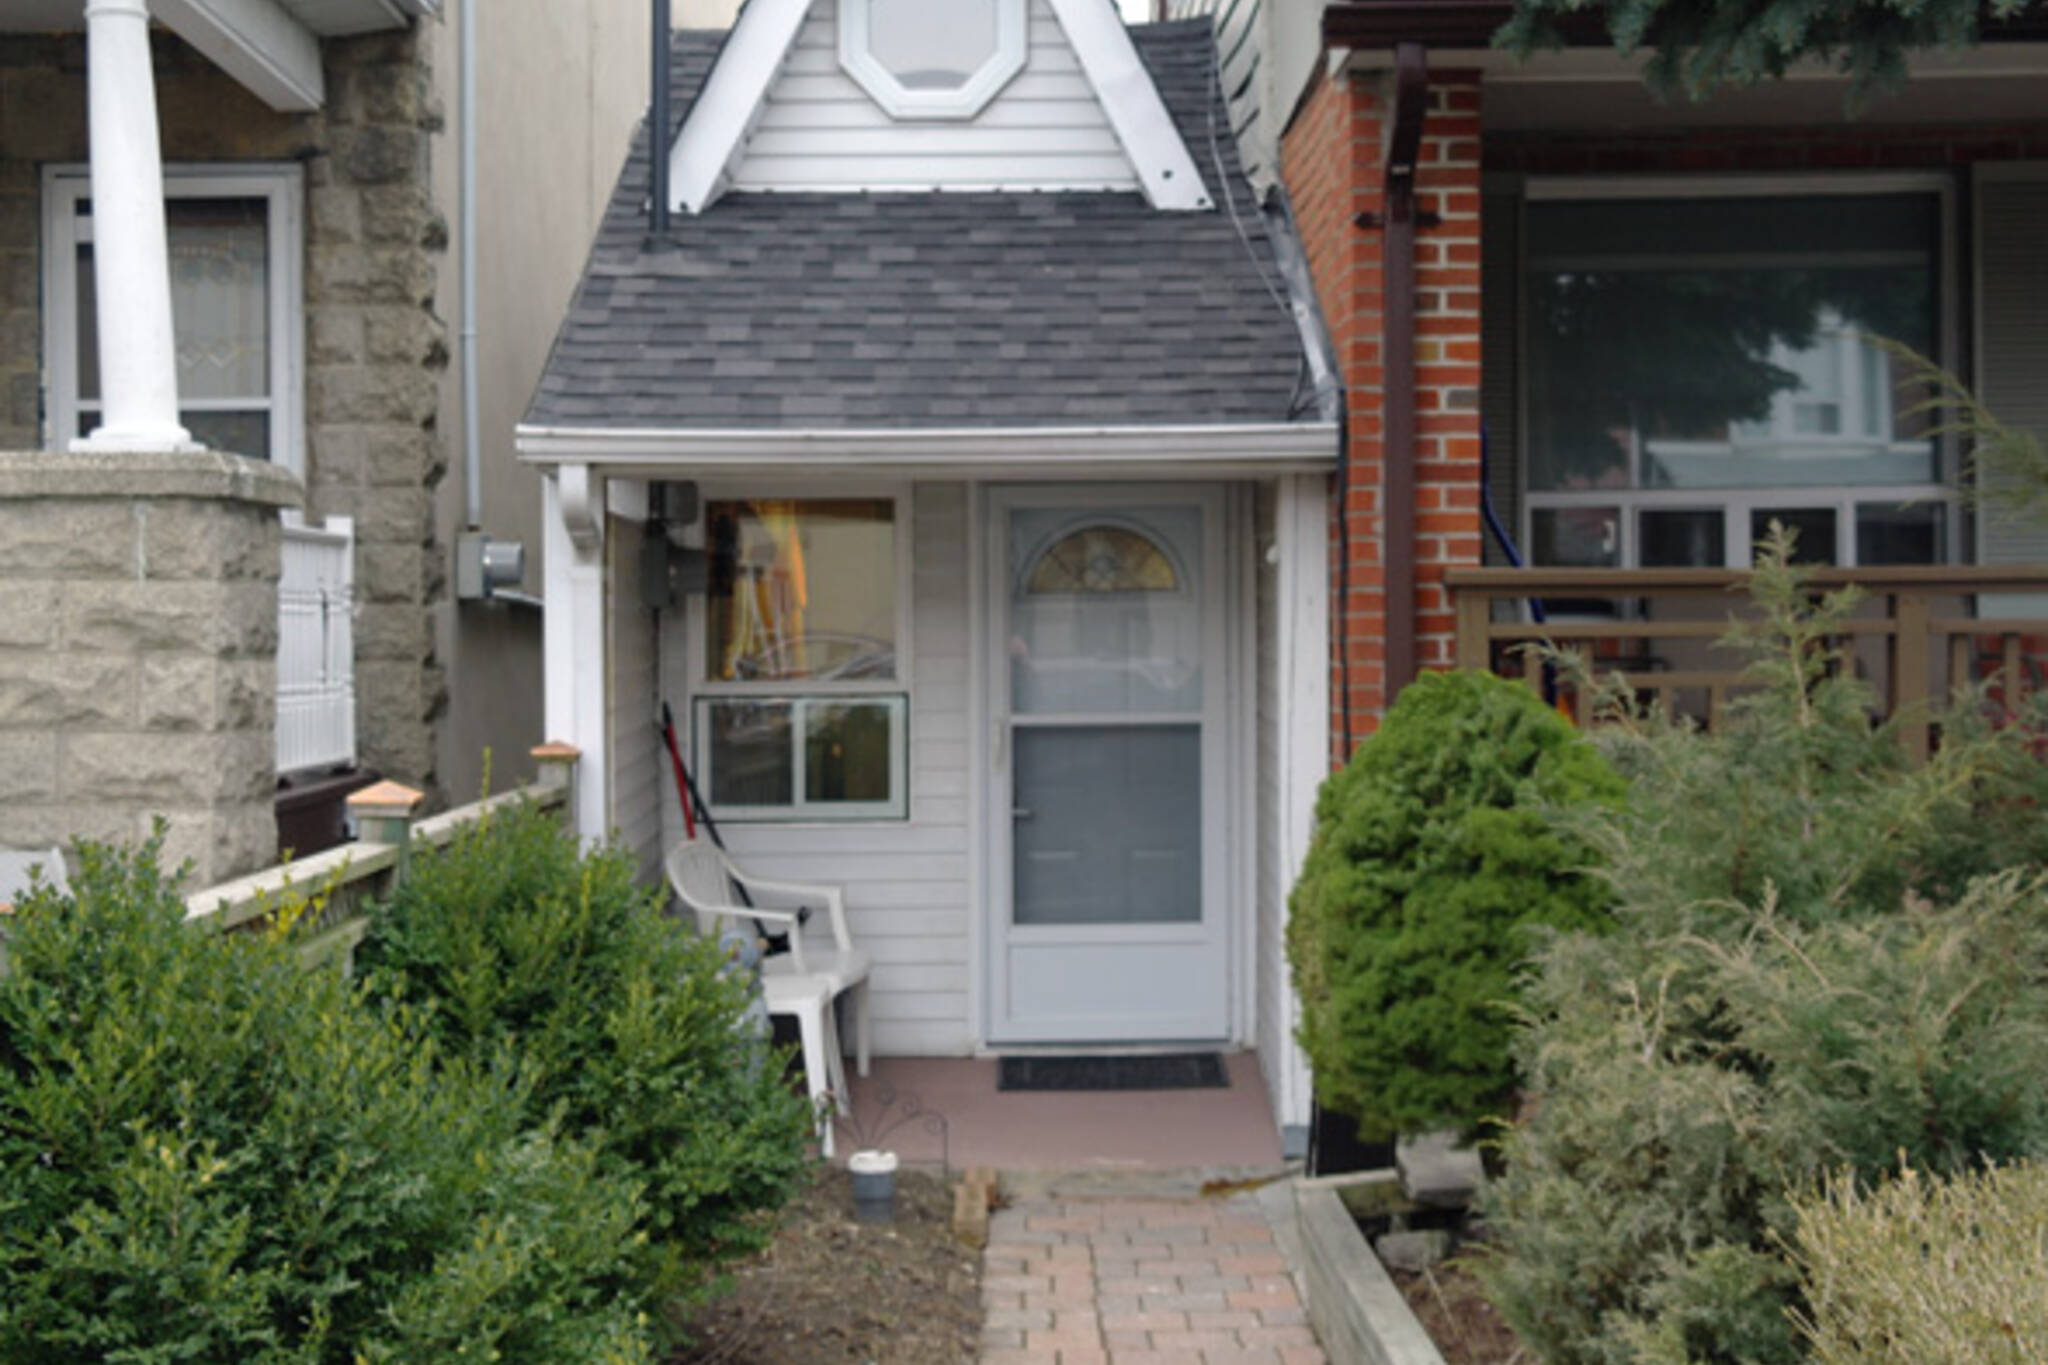 29 unusually small houses in Toronto